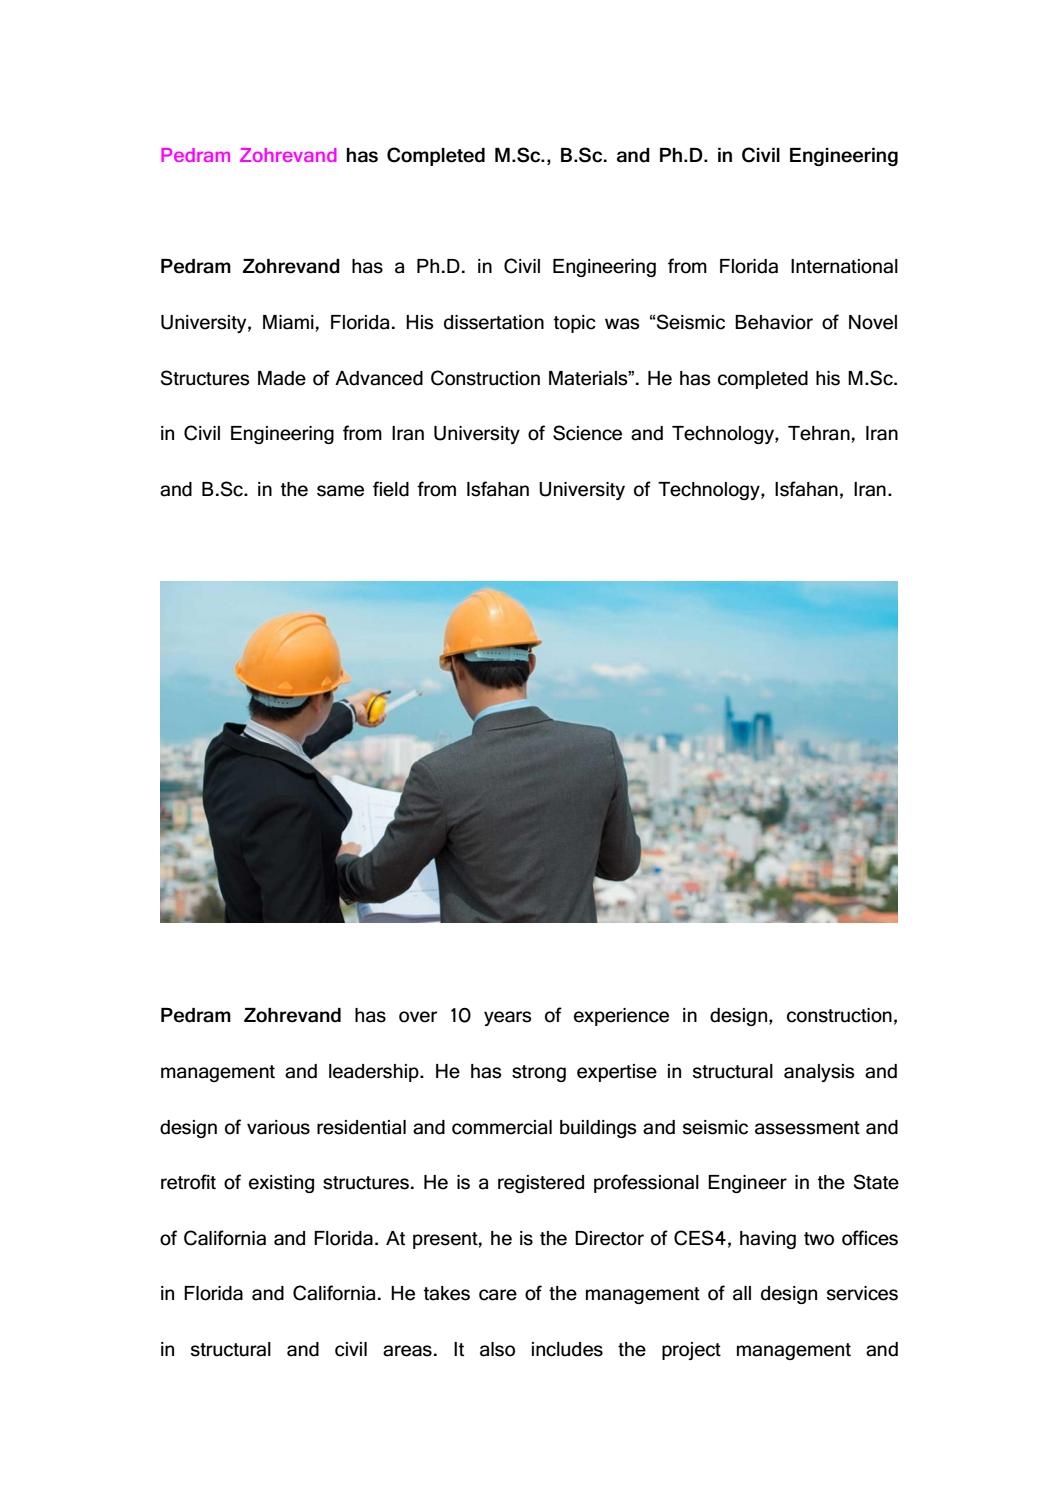 bsc civil engineering dissertation Browse and read civil engineering thesis (1979) ix hs9 american culture research paper ideas d apr 26, 2015 - 47 min - uploaded by dtudkwrite your bsc or msc thesis combining sharelatex and mendeley - duration 43 10 civil engineering masters theses collection the mission of the civil engineering program is to prepare students to.